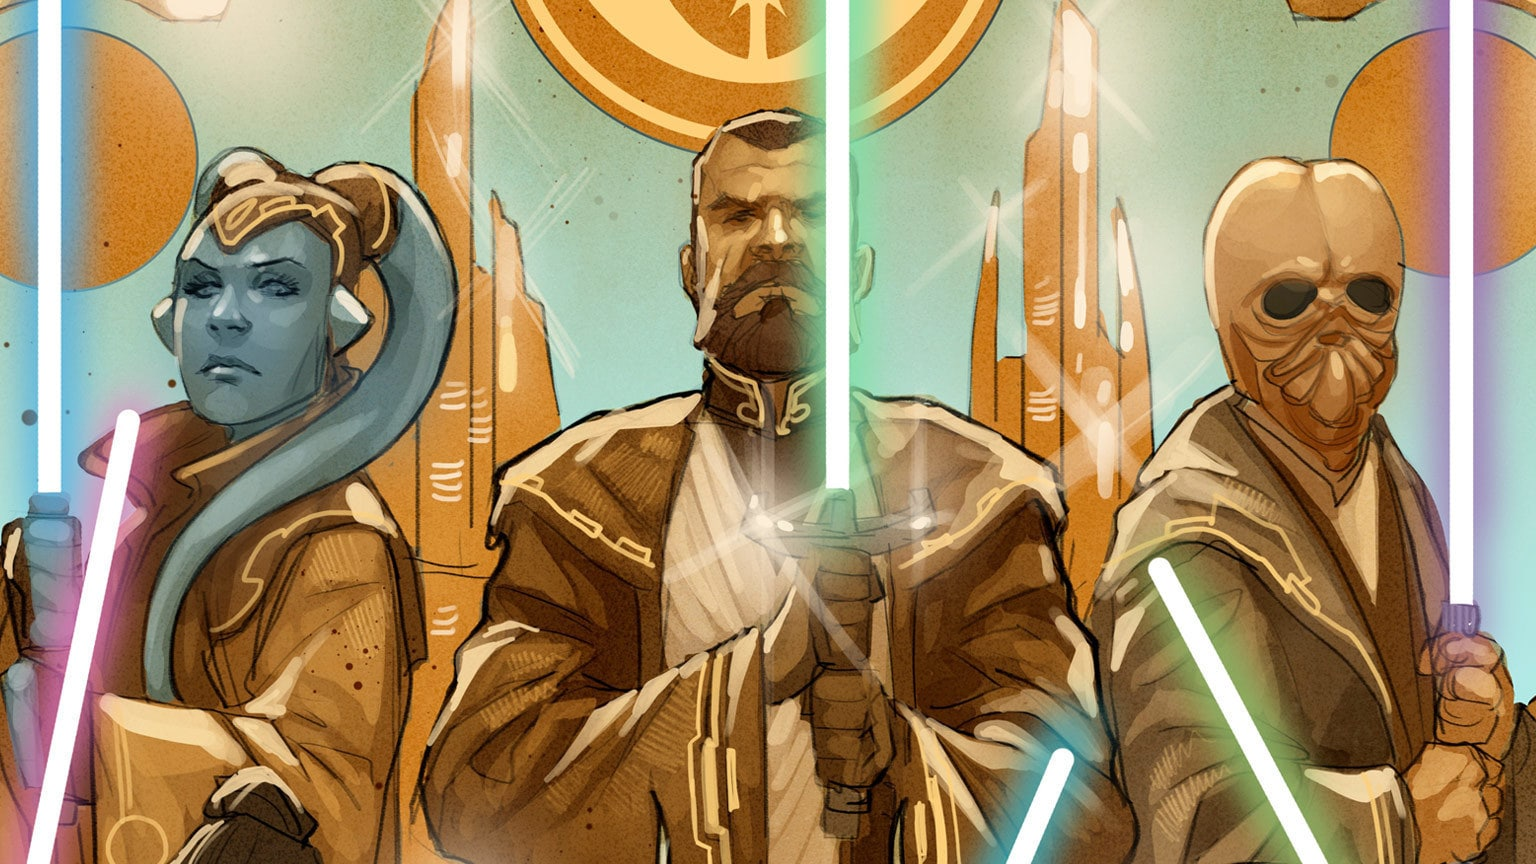 Lucasfilm to Launch Star Wars: The High Republic Publishing Campaign in 2020